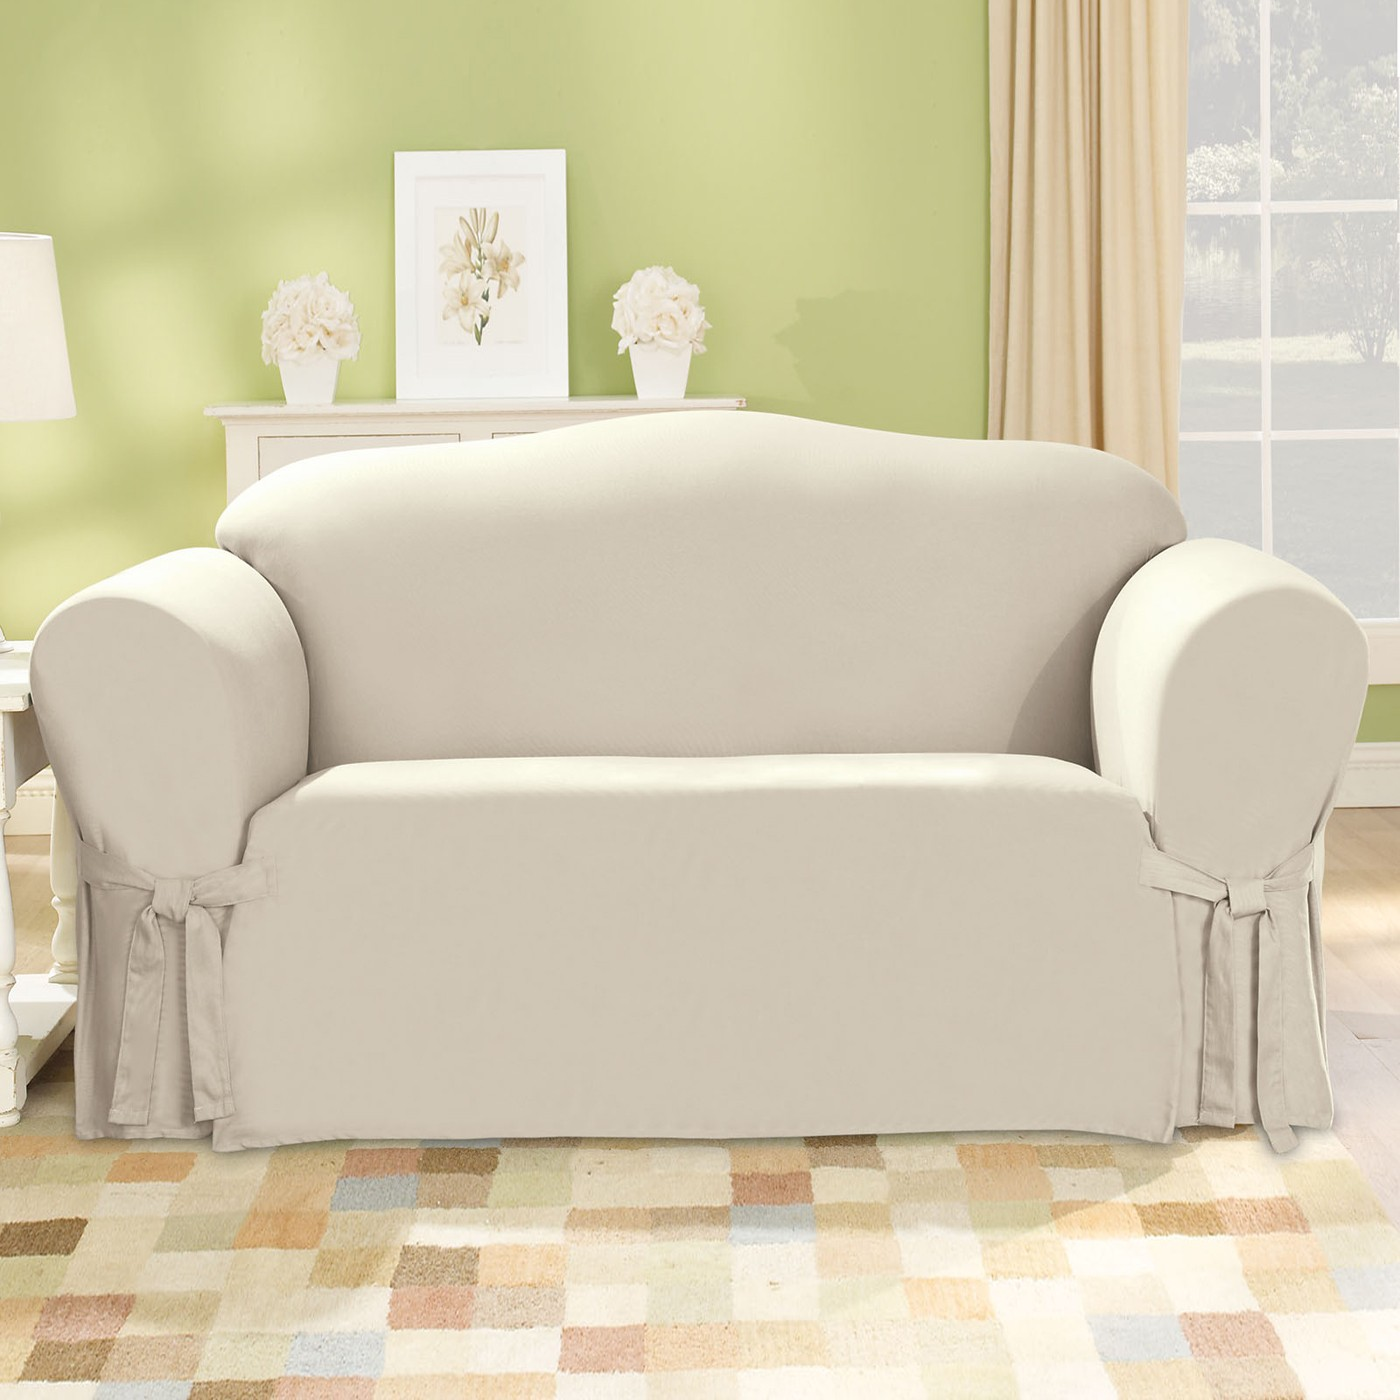 Fascinating Sofa Covers Bed Bath And Beyond Photo Modern Design Ideas